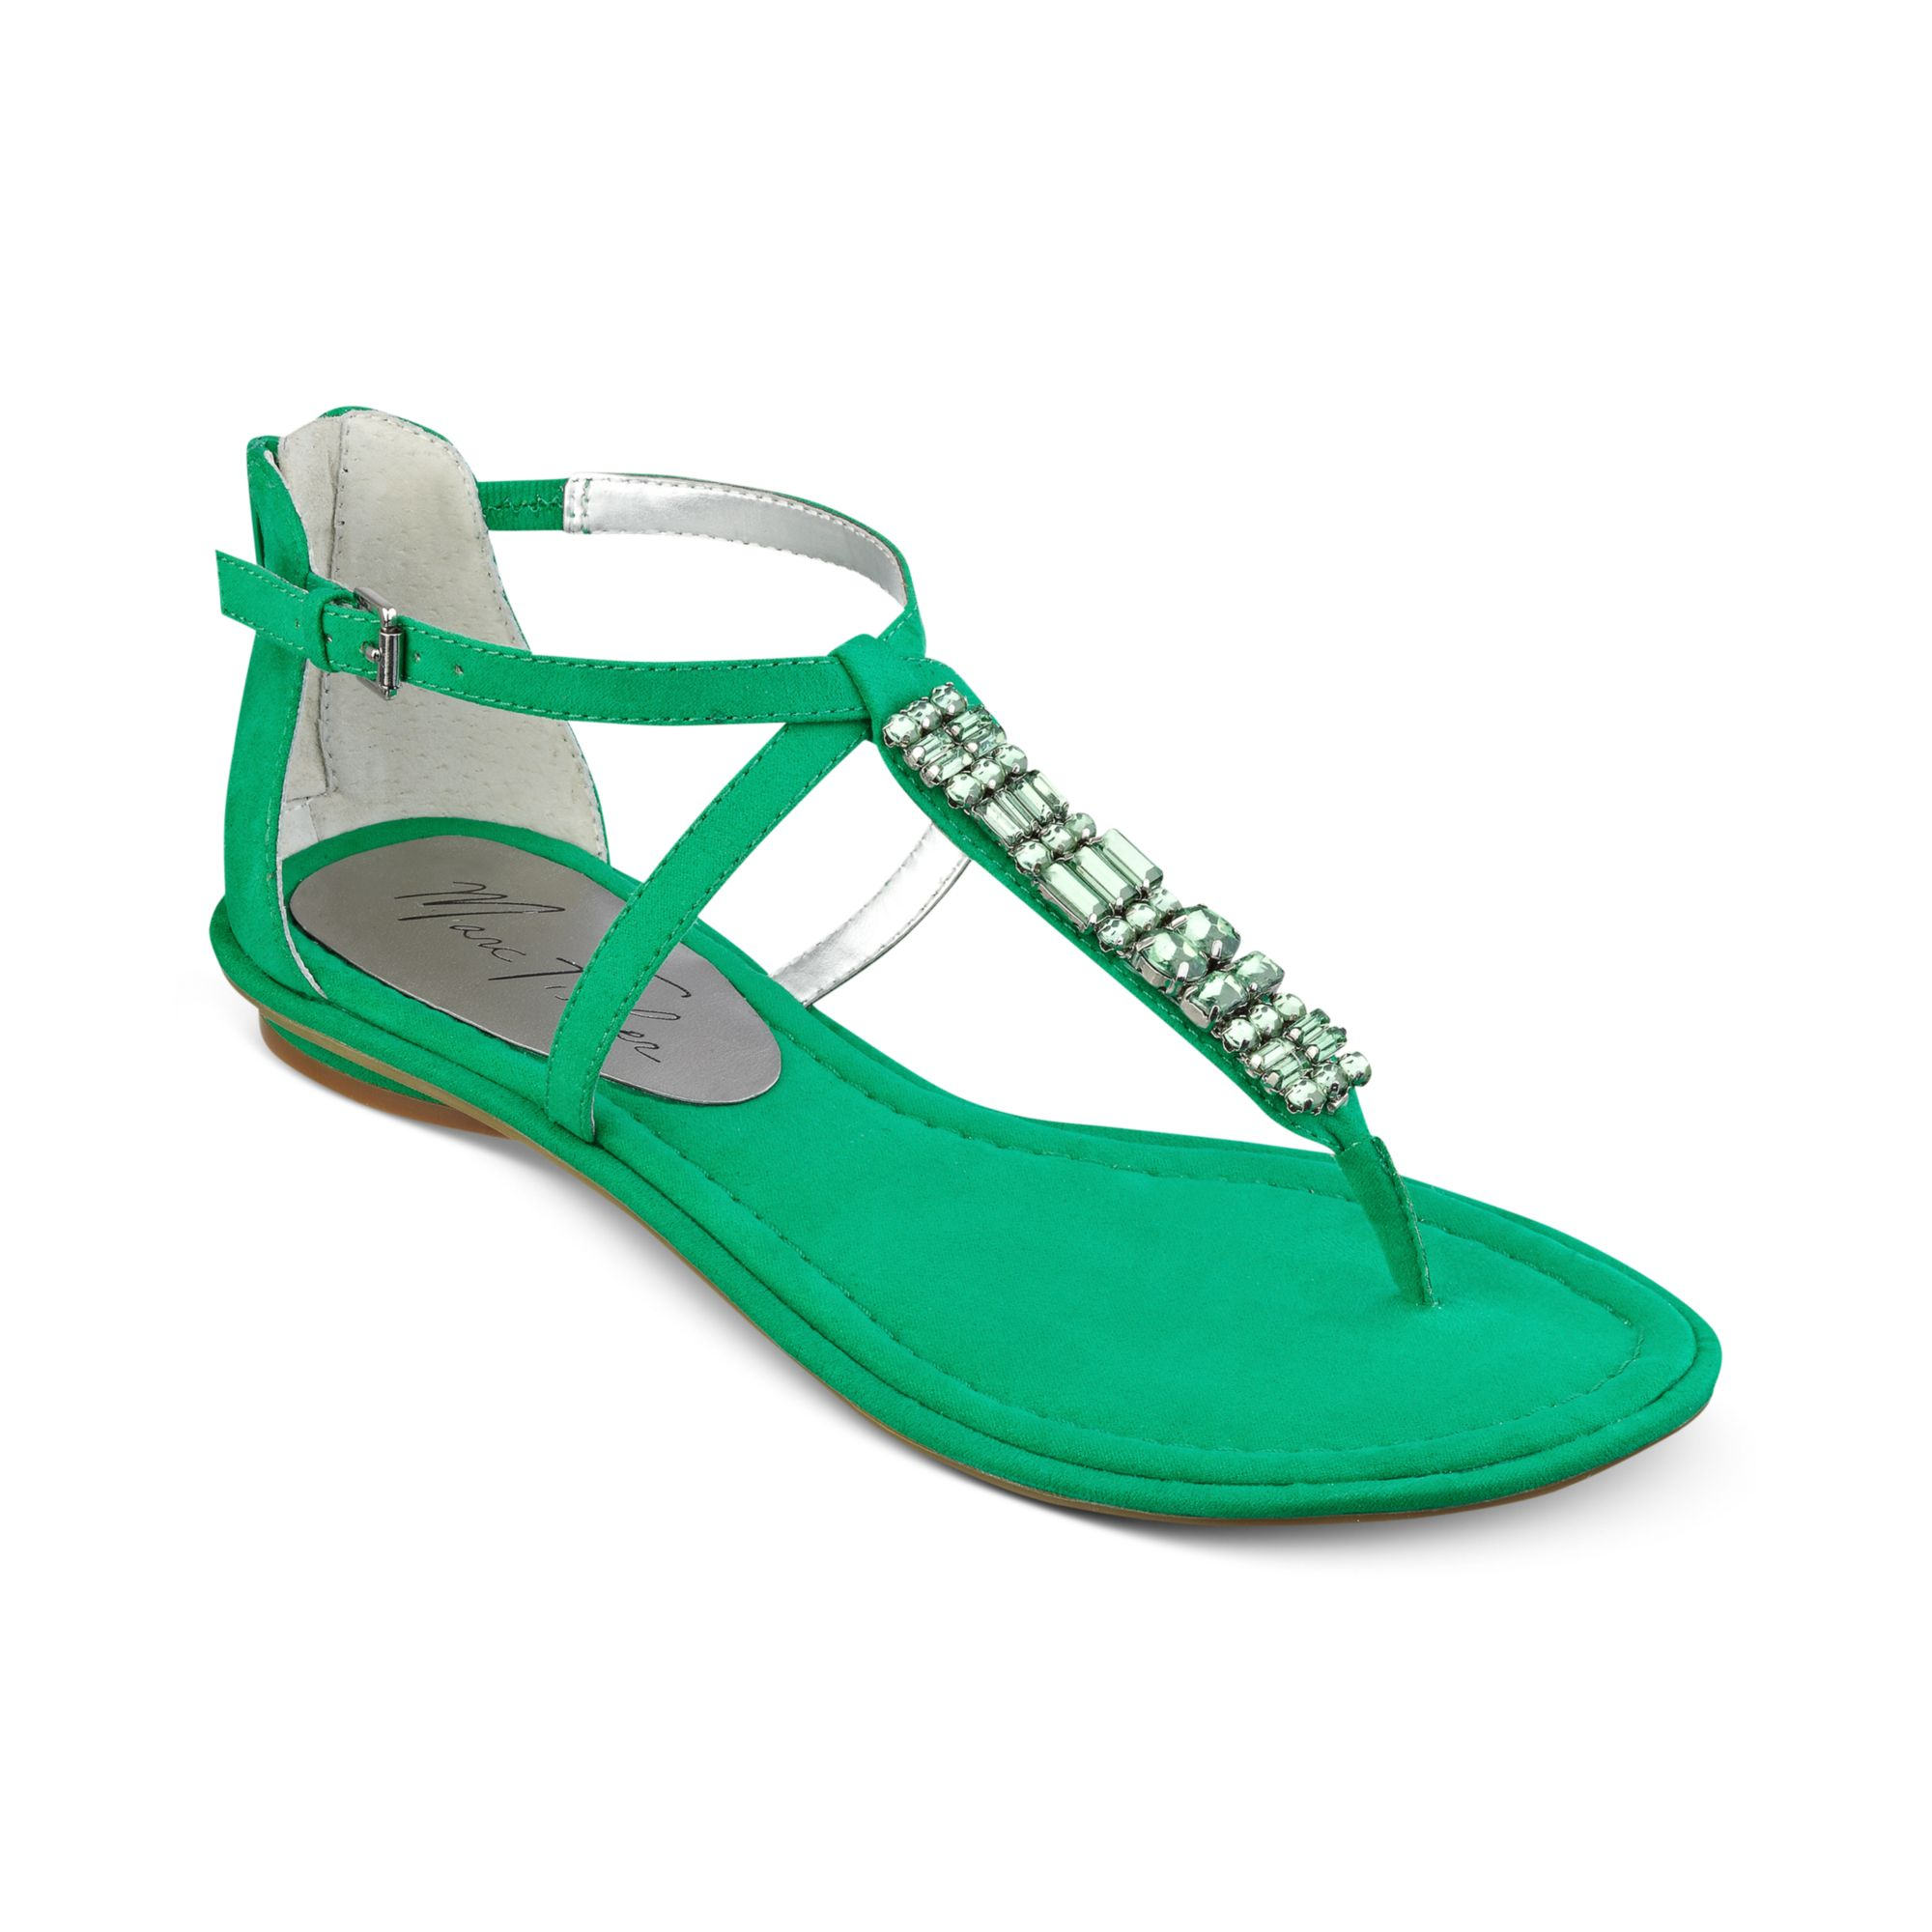 3268a4340ee5 Lyst marc fisher mard flat thong sandals in green jpg 2000x2000 Green flat  sandals for women